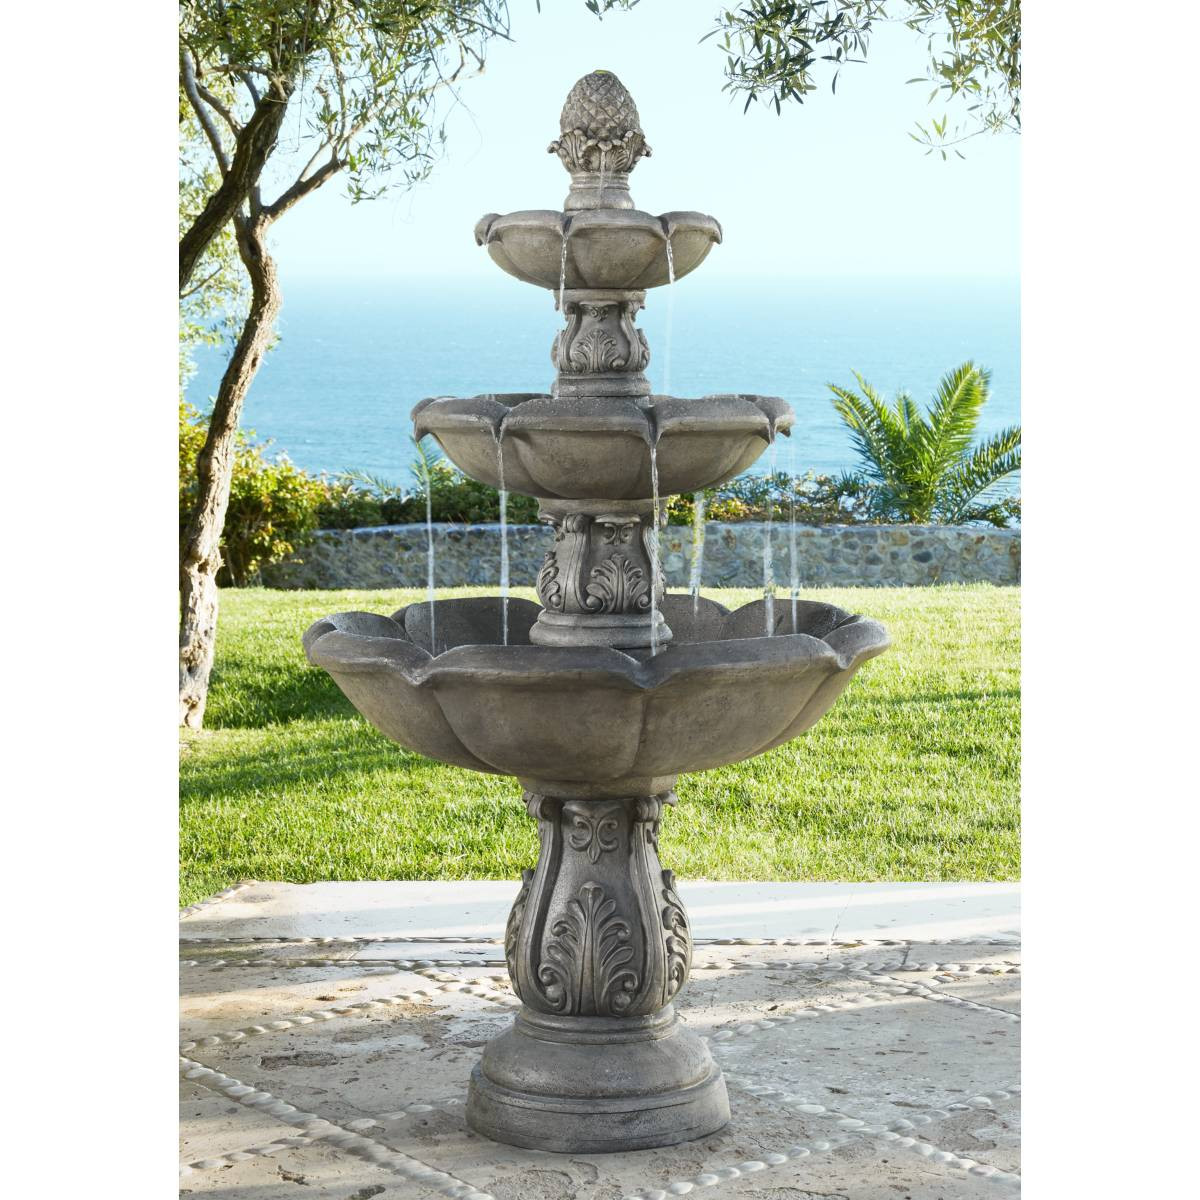 Best ideas about Outdoor Water Fountain . Save or Pin Outdoor Fountains Patio & Garden Water Fountains Now.